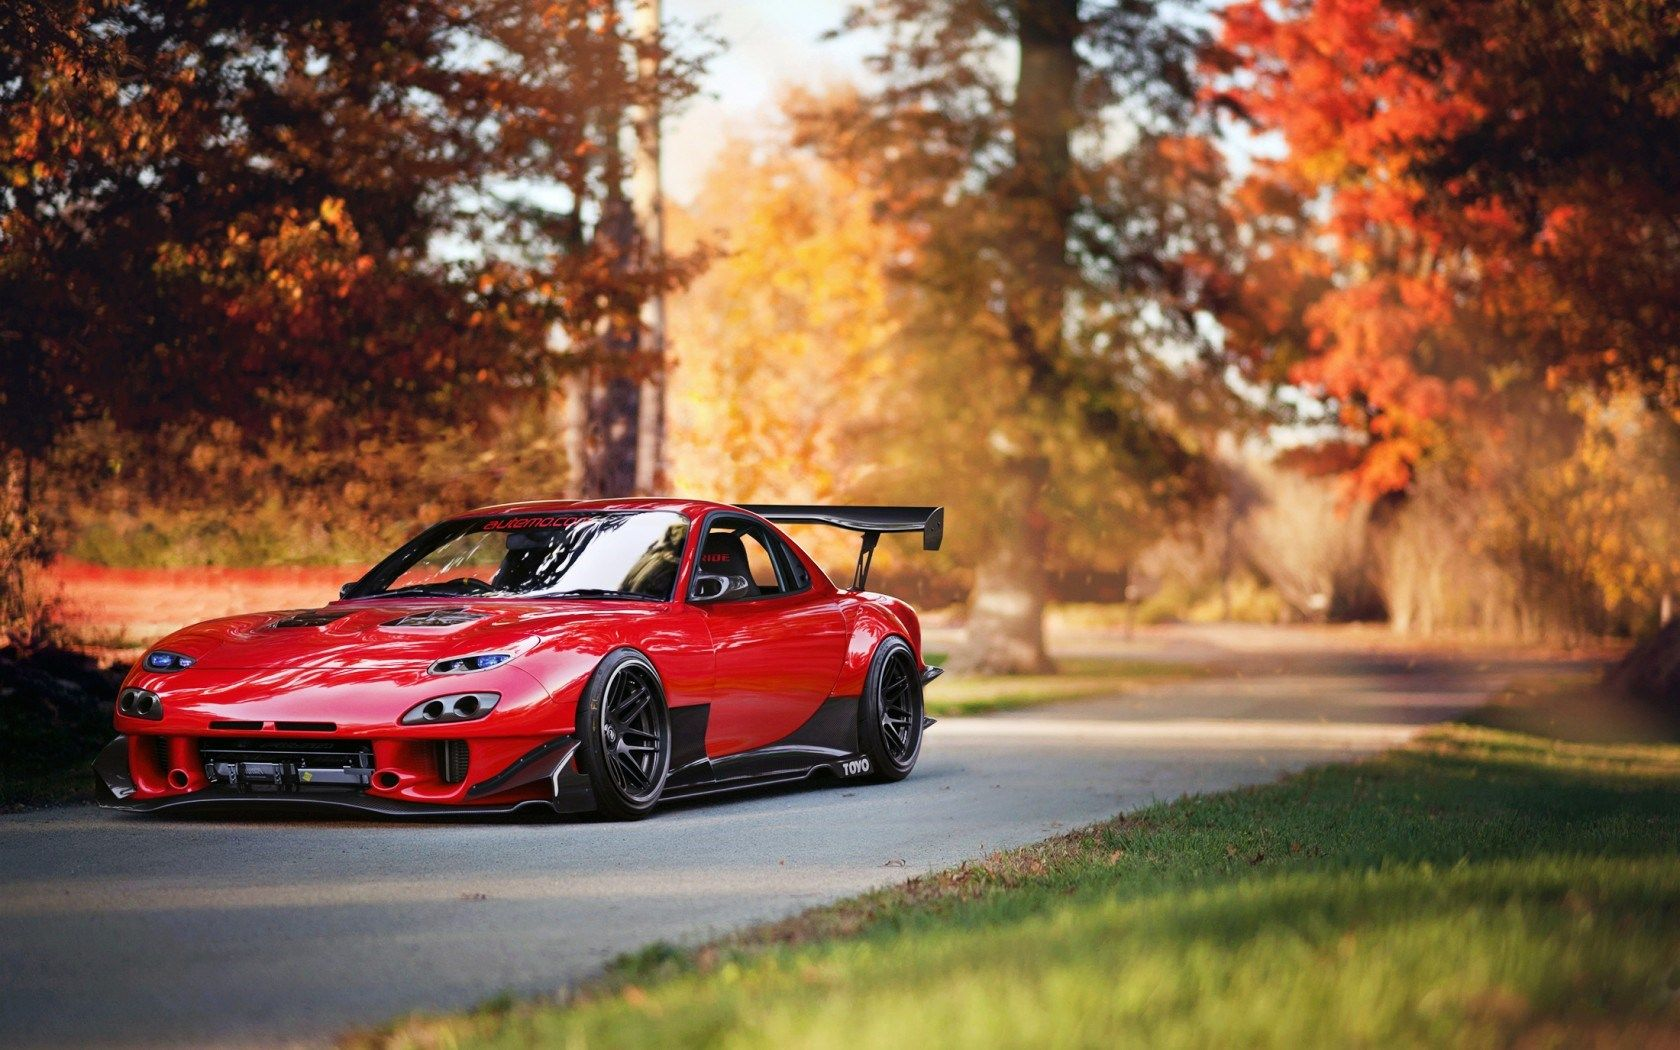 Rx7 Wallpapers Top Free Rx7 Backgrounds Wallpaperaccess